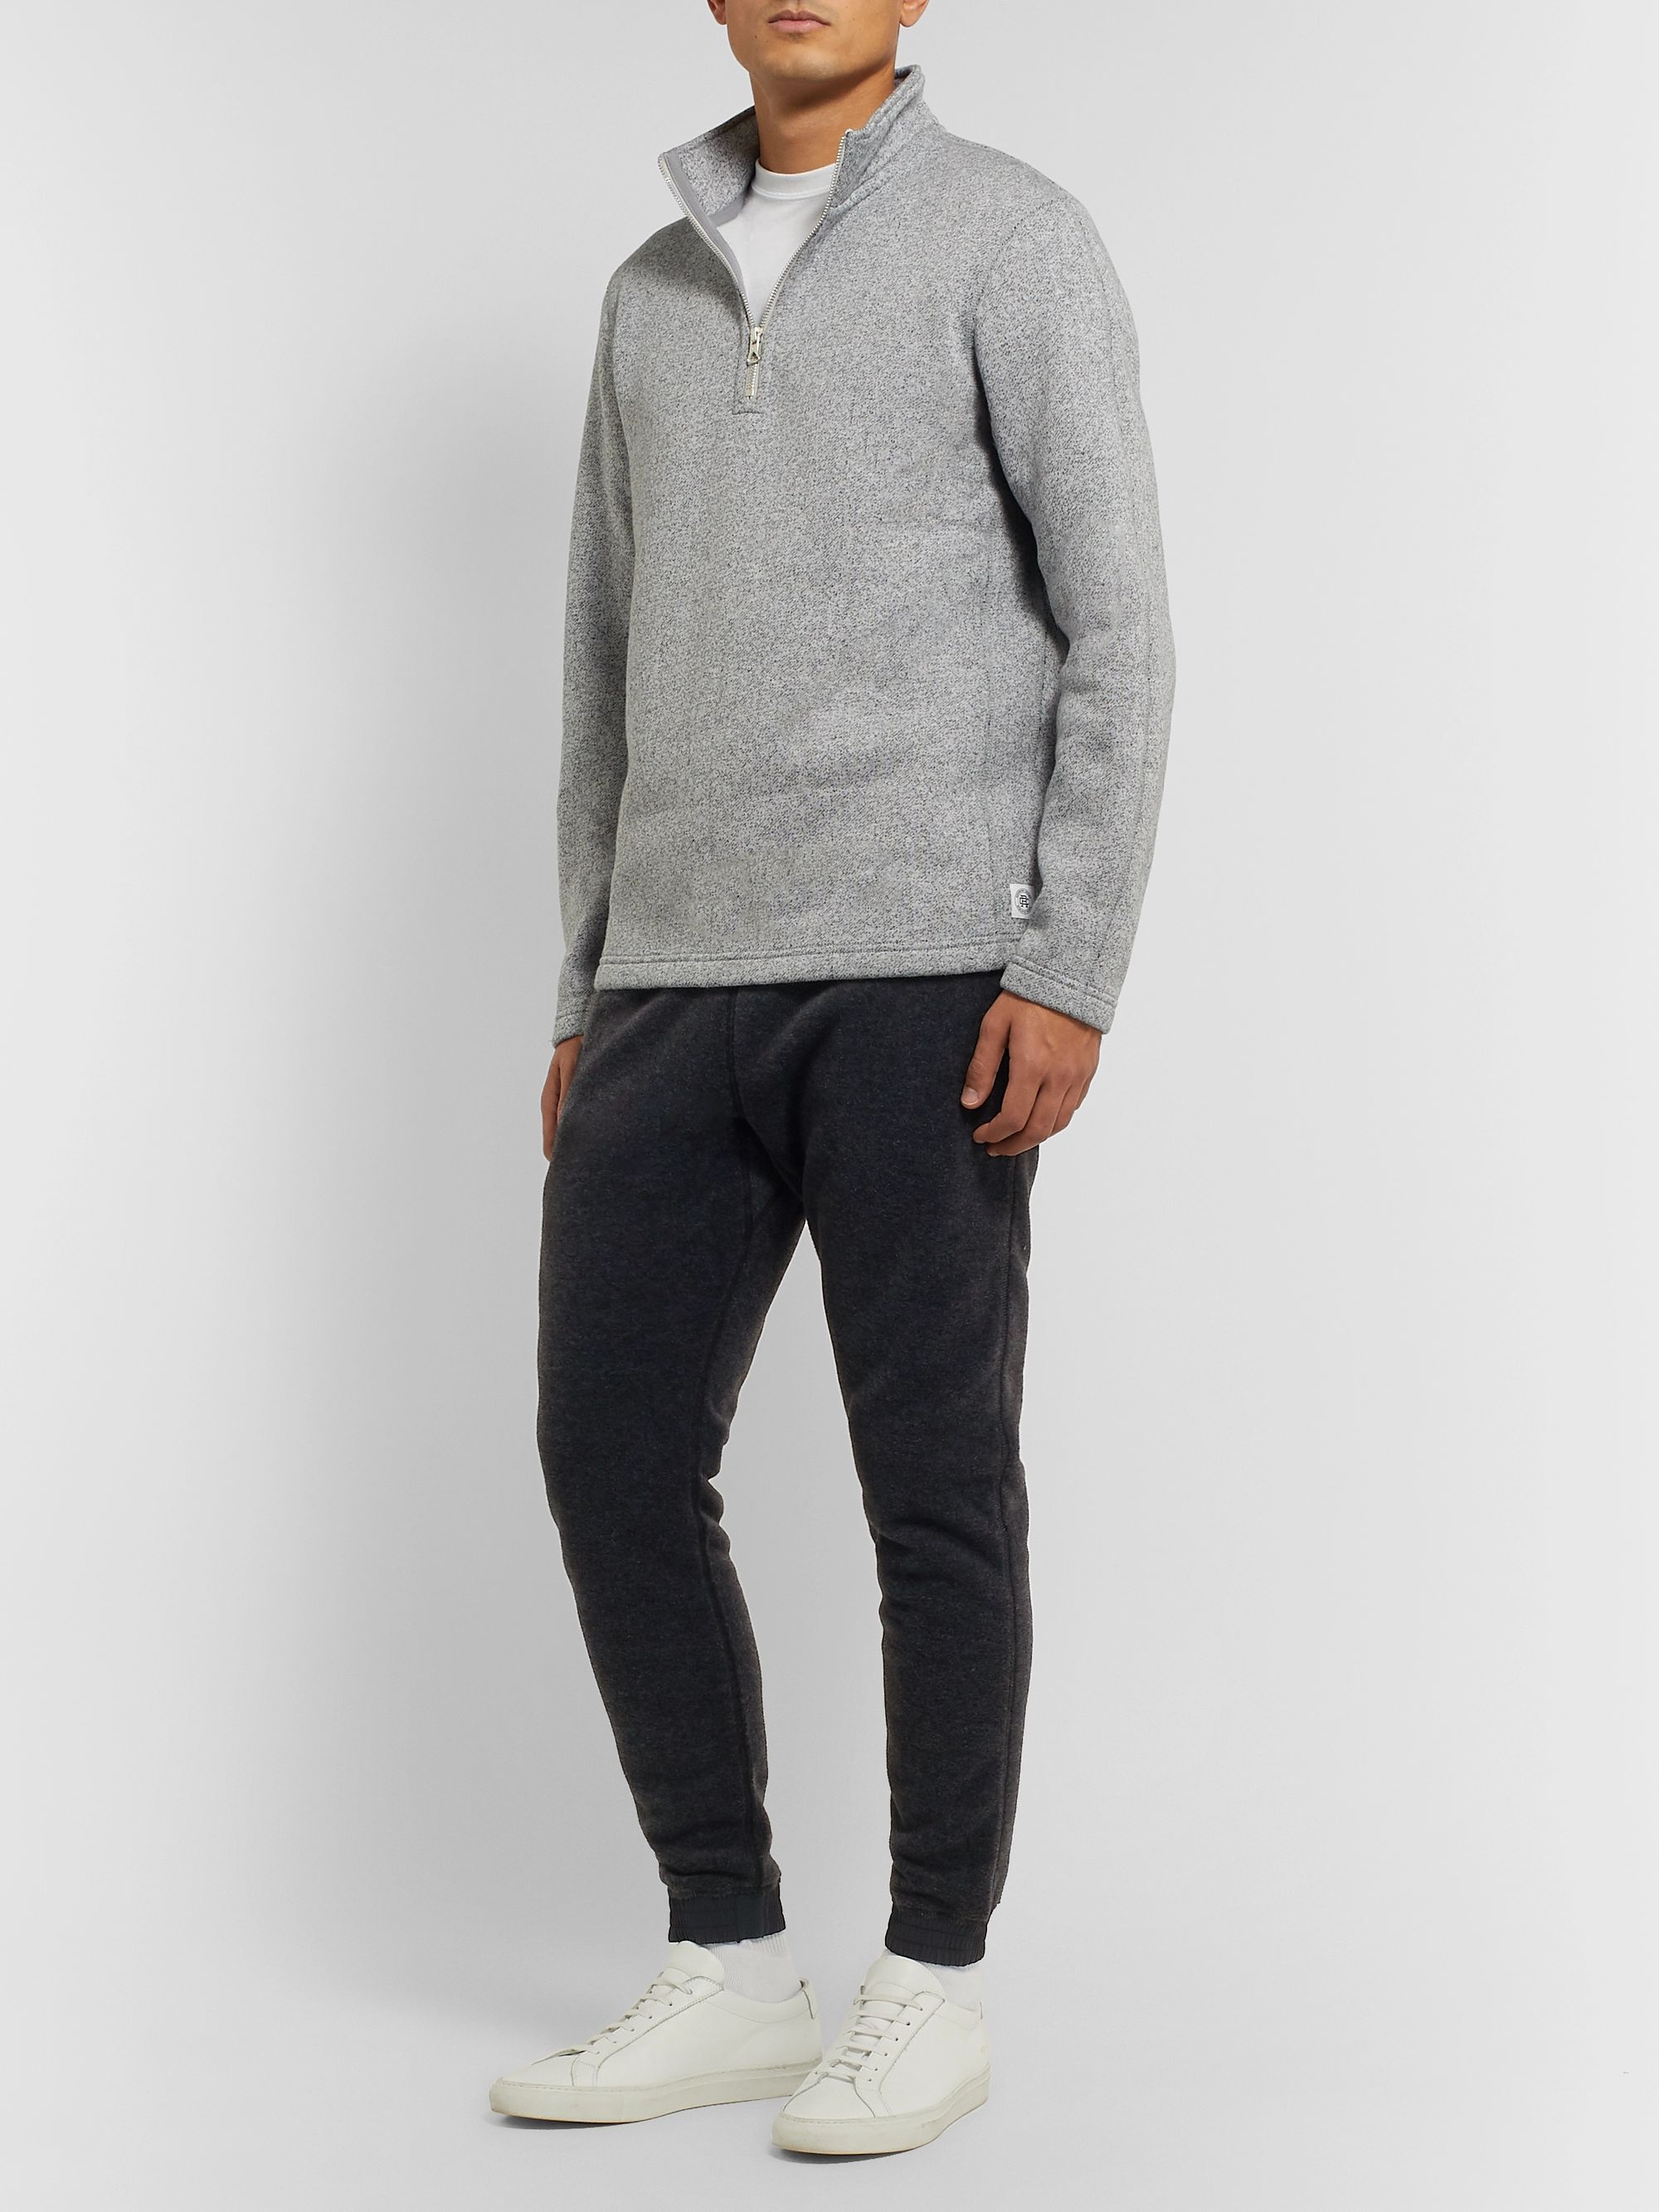 Reigning Champ Nylon-Trimmed Polartec Fleece Drawstring Trousers